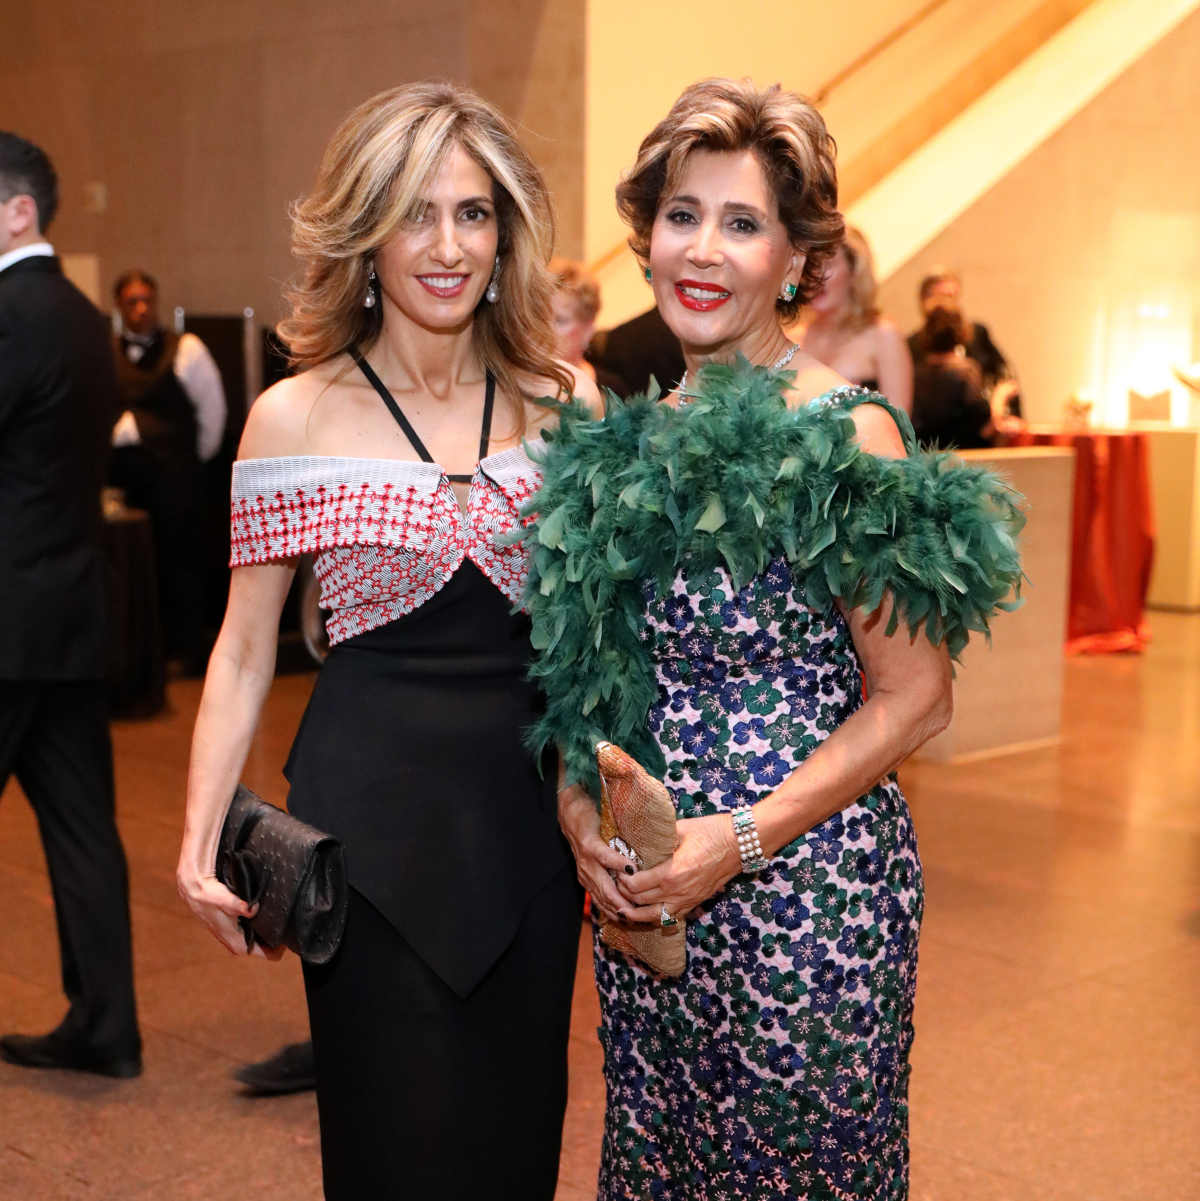 Houston, MFAH Art of the Islamic Worlds Gala, November 2017, Sima Ladjevardian, Shahla Ansary